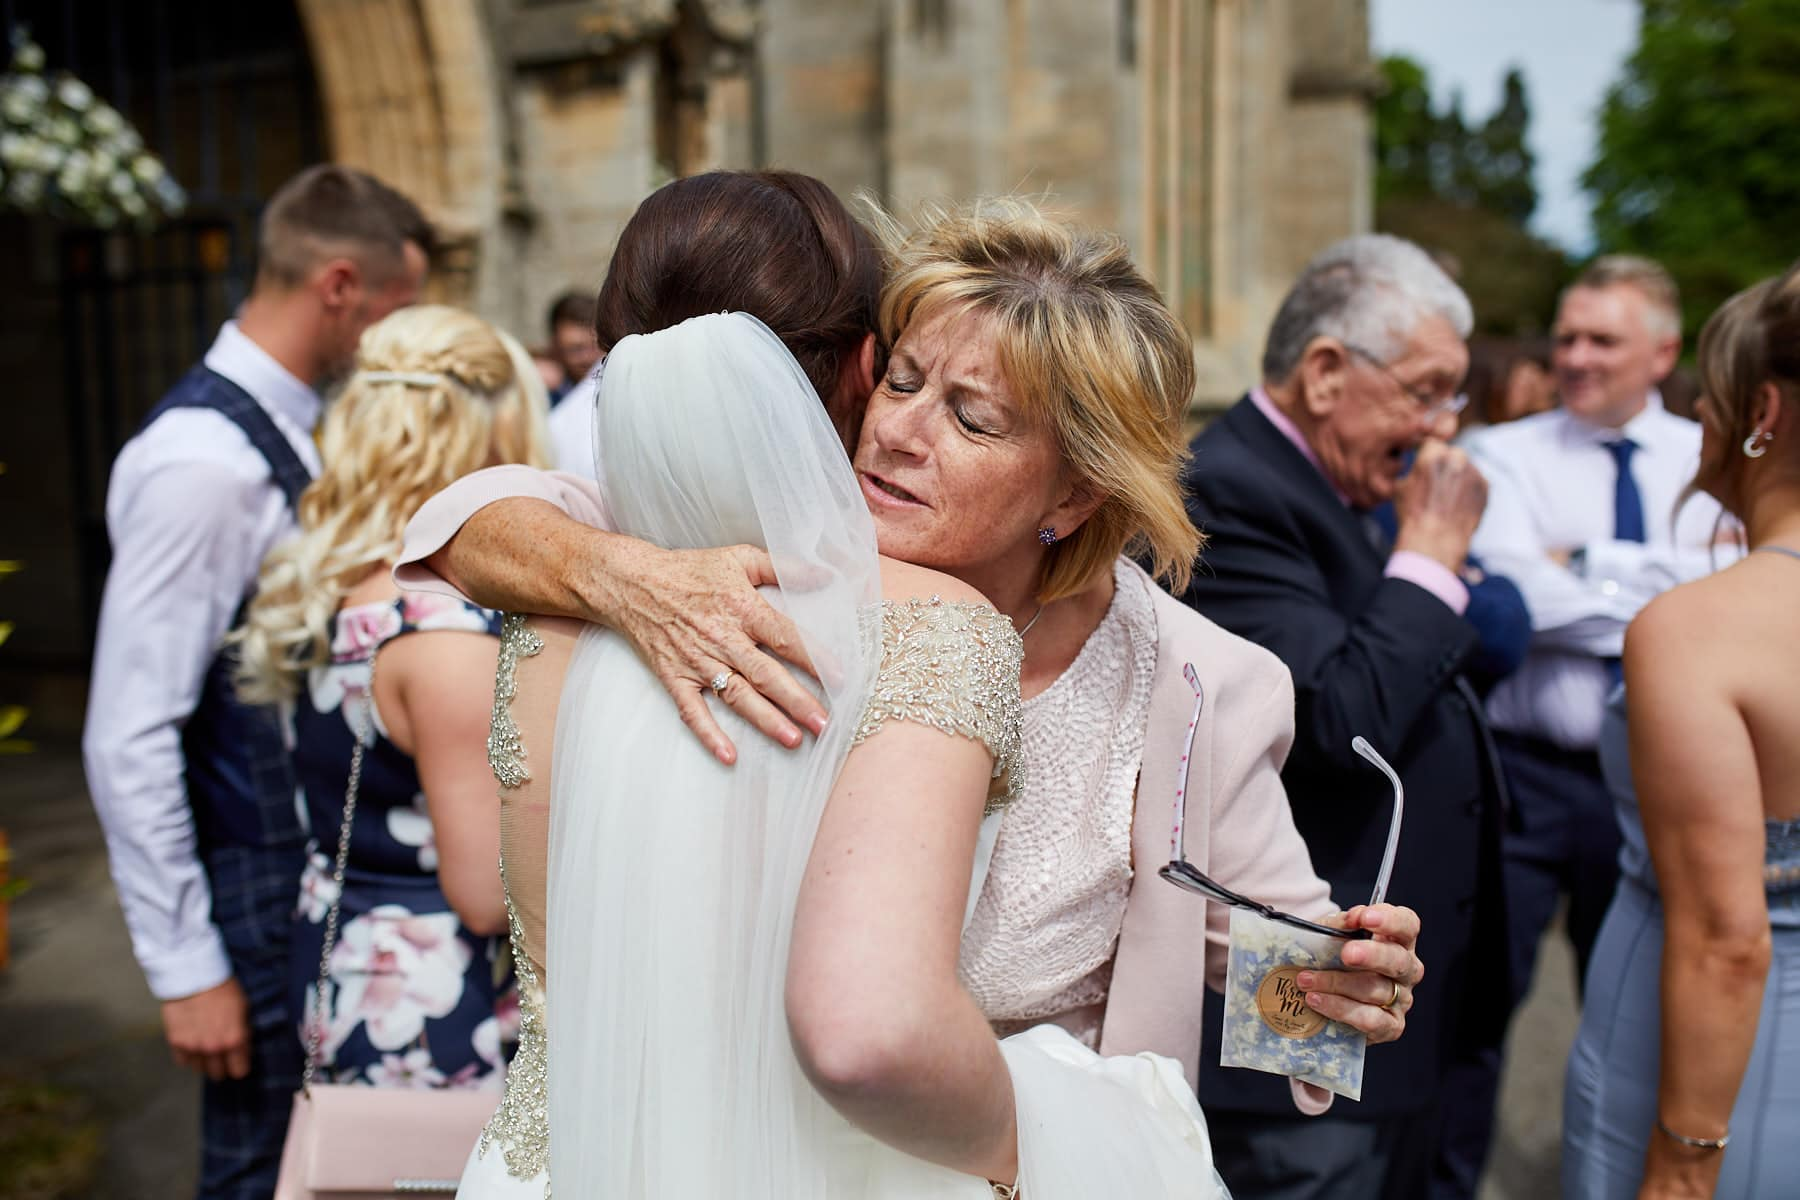 a family member embraces the bride on her wedding day